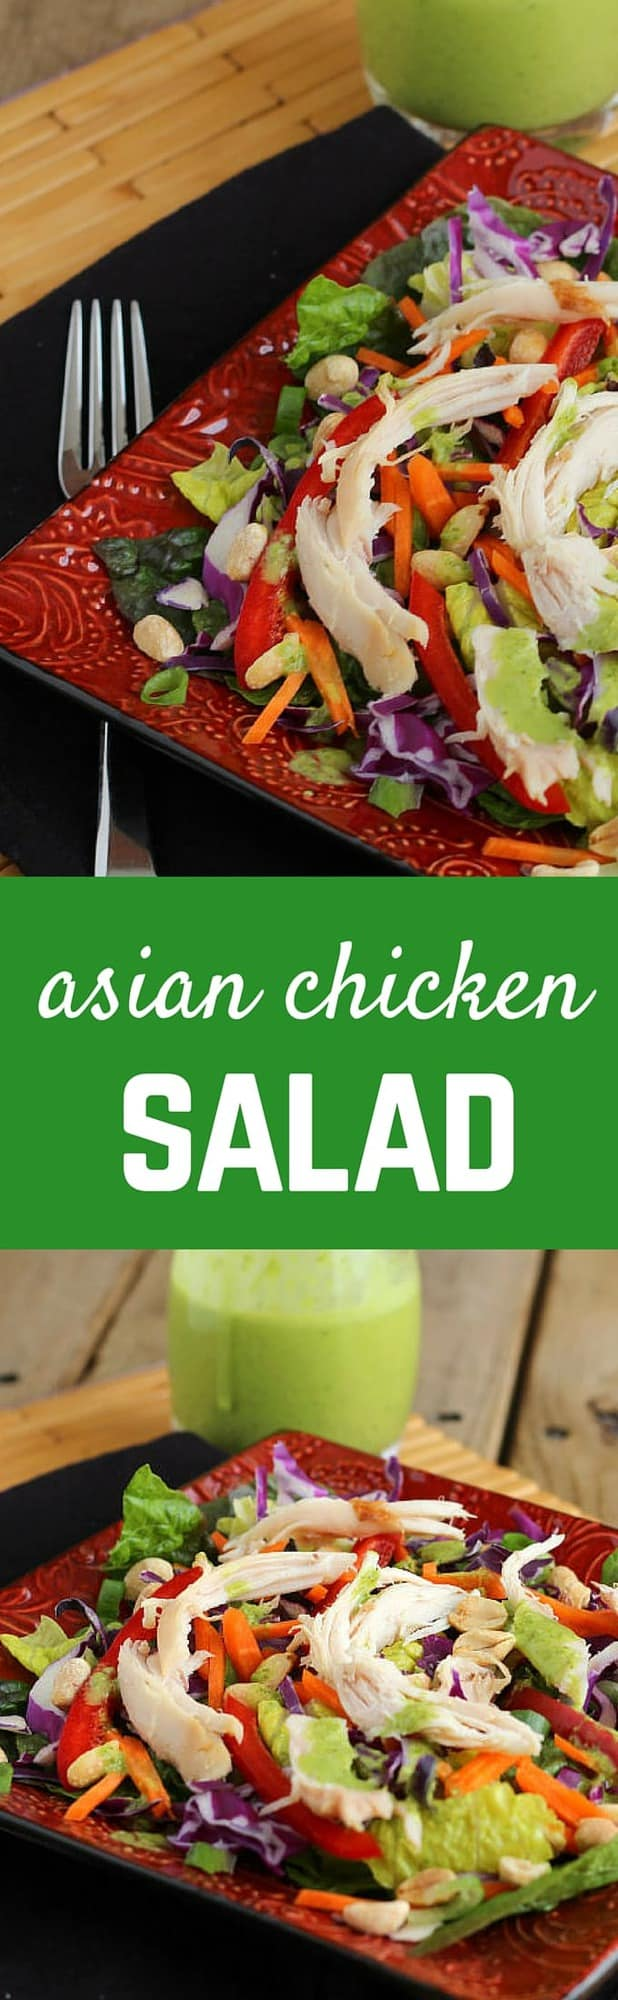 Quick and easy meals don't have to come out of a box. This delicious Asian Chicken Salad can be on the table in minutes. Get the recipe on RachelCooks.com!